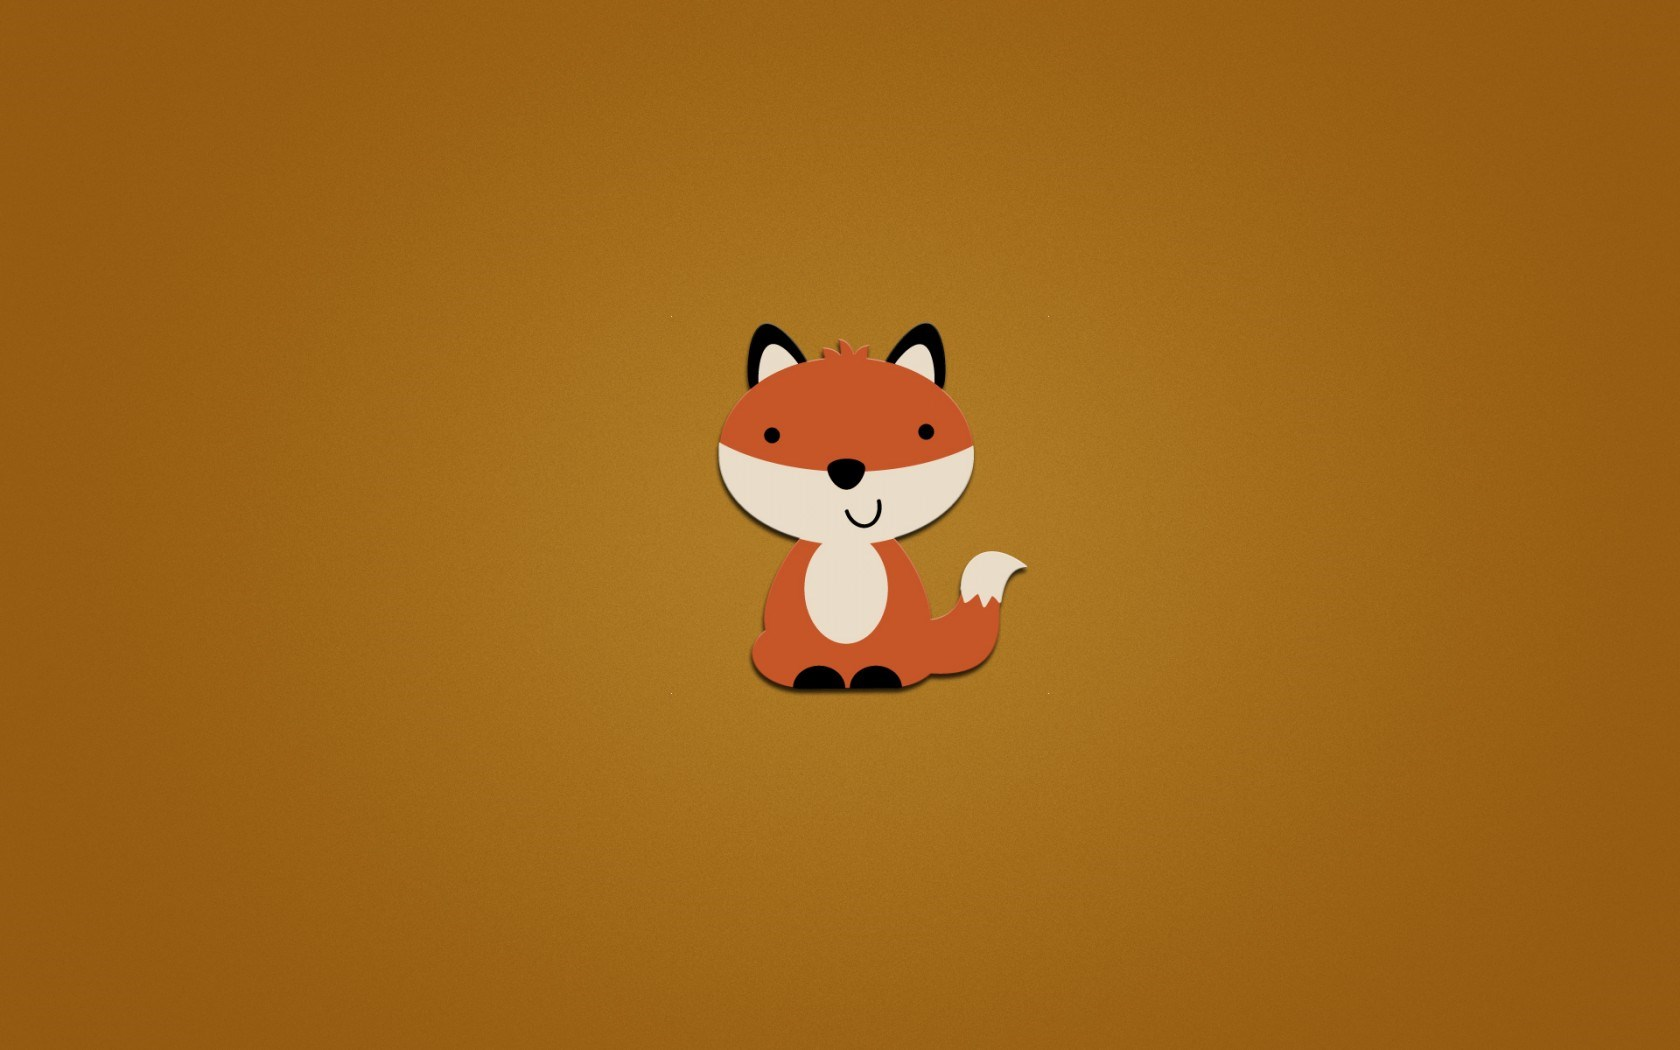 Fox Smile Art Cartoon